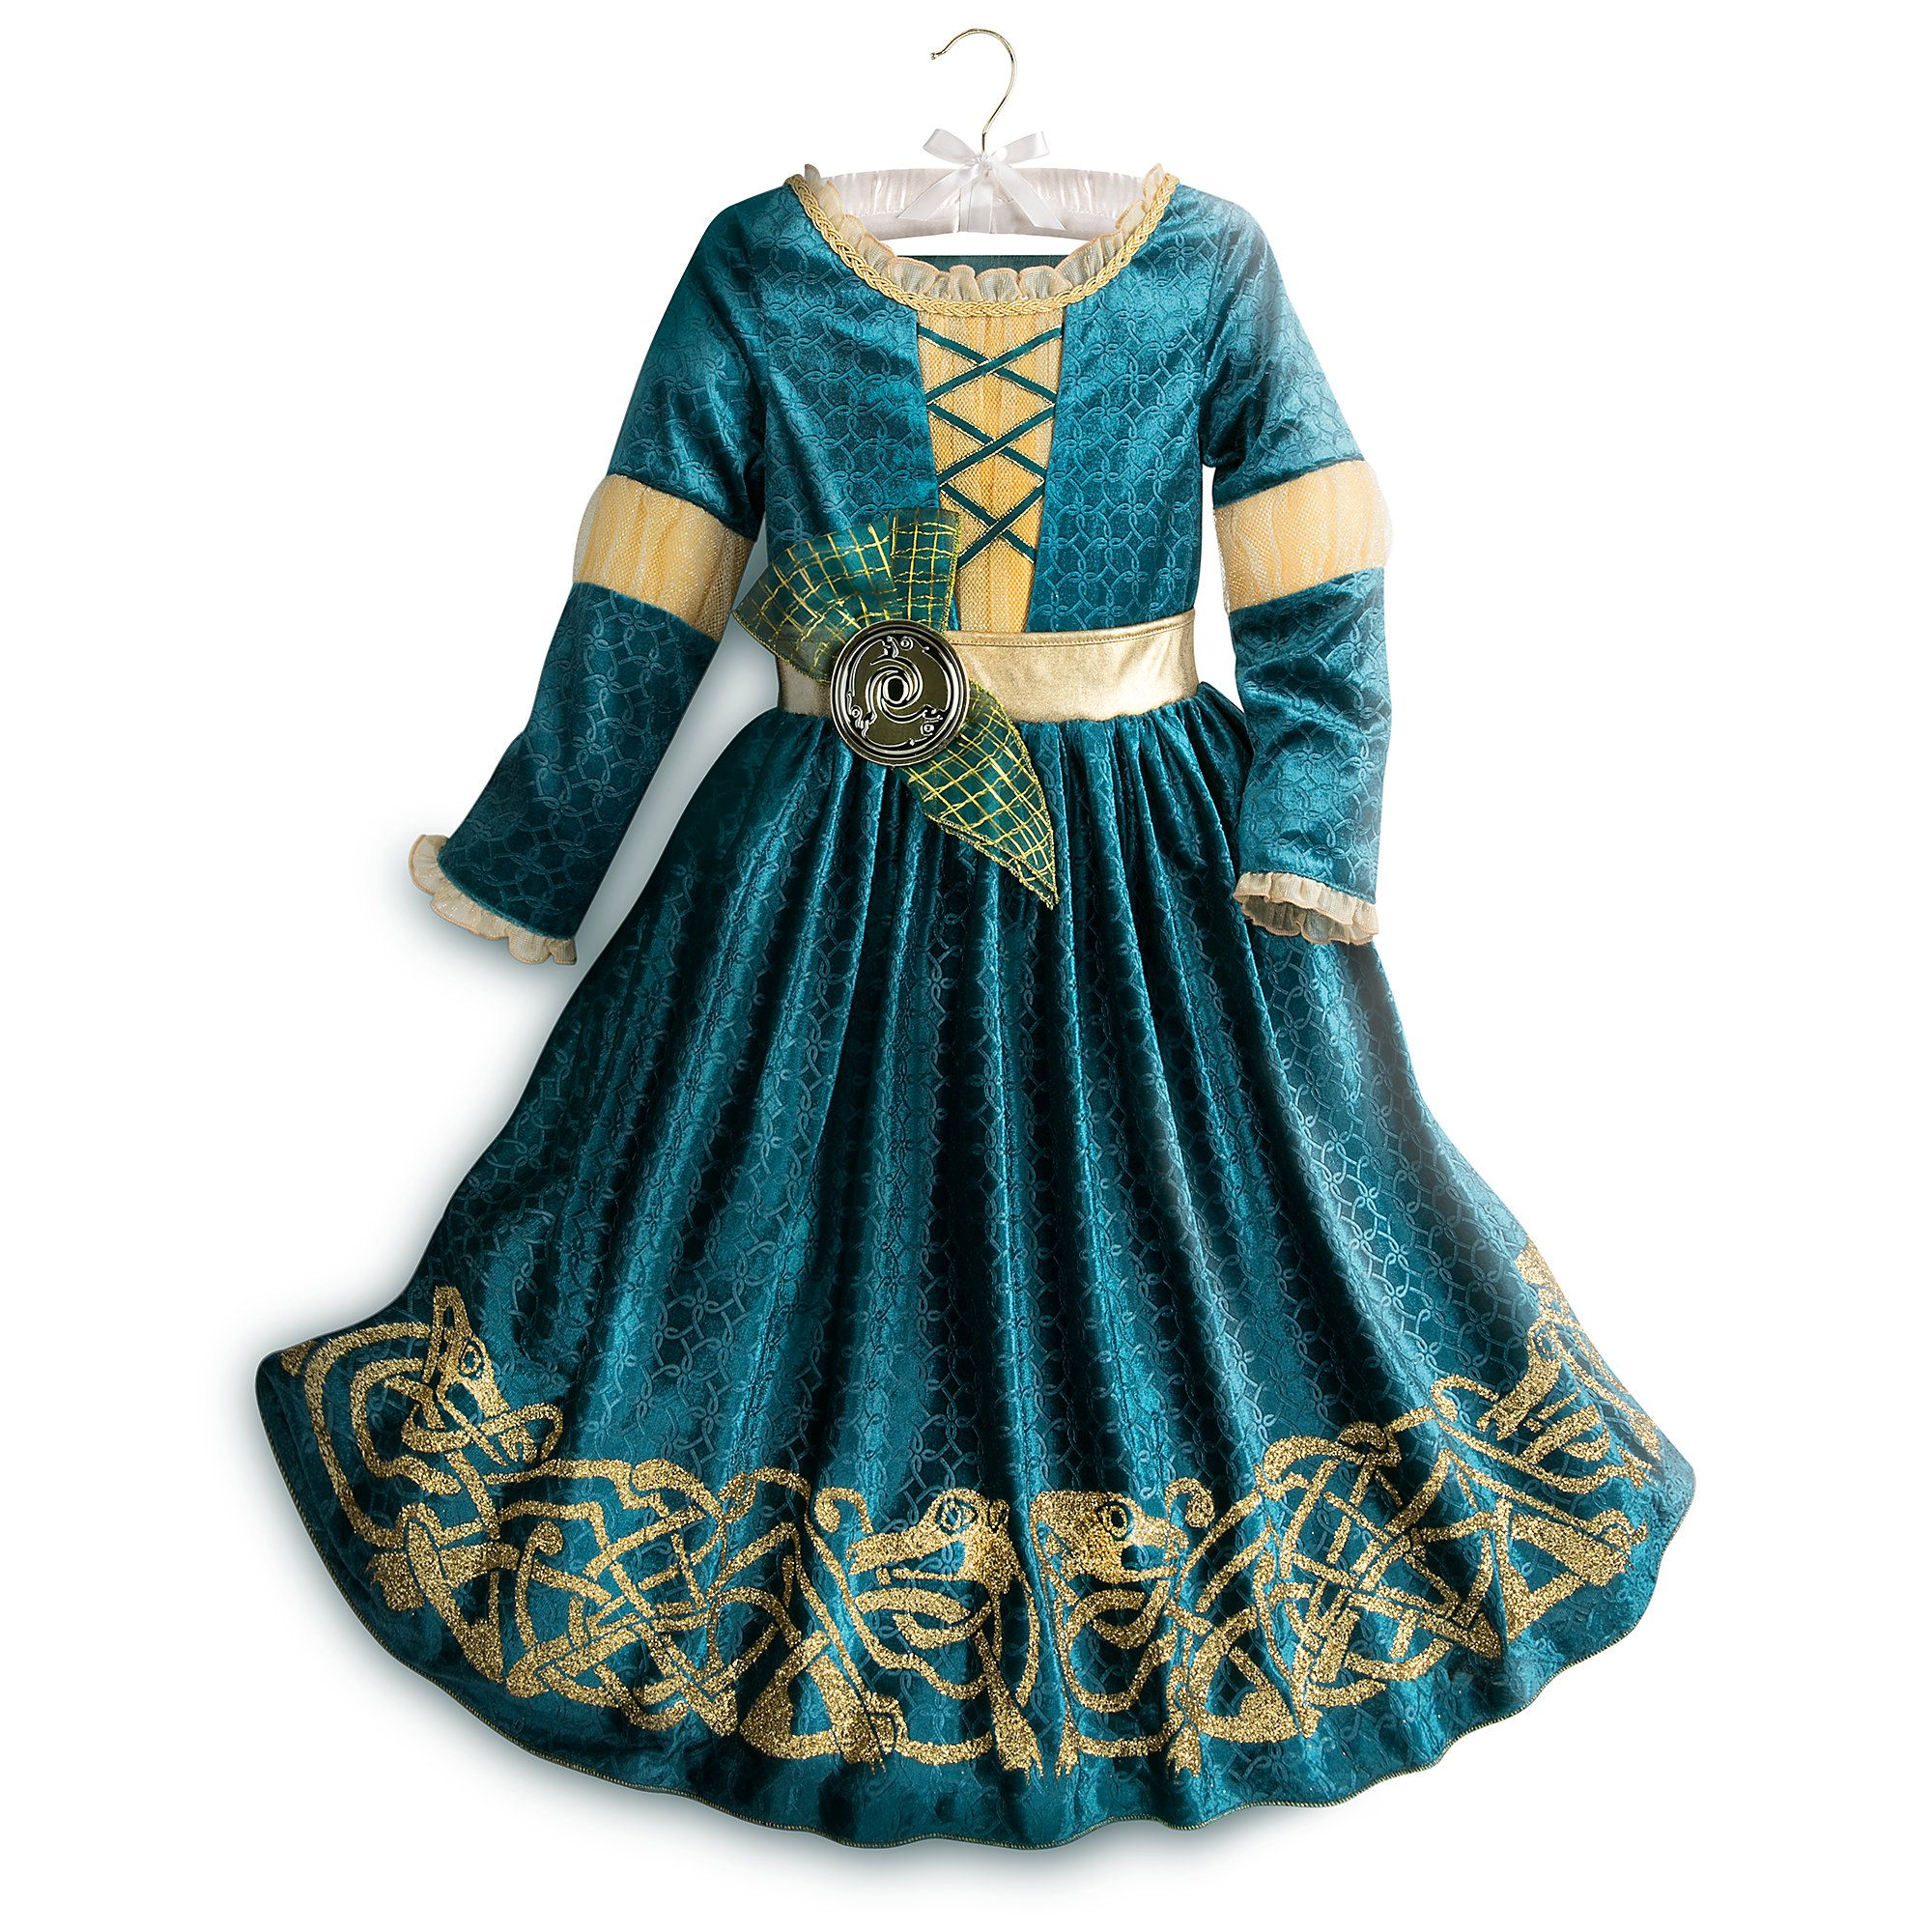 Disney wedding dresses jasmine  Merida Costume for Kids  June   Pinterest  Merida costume